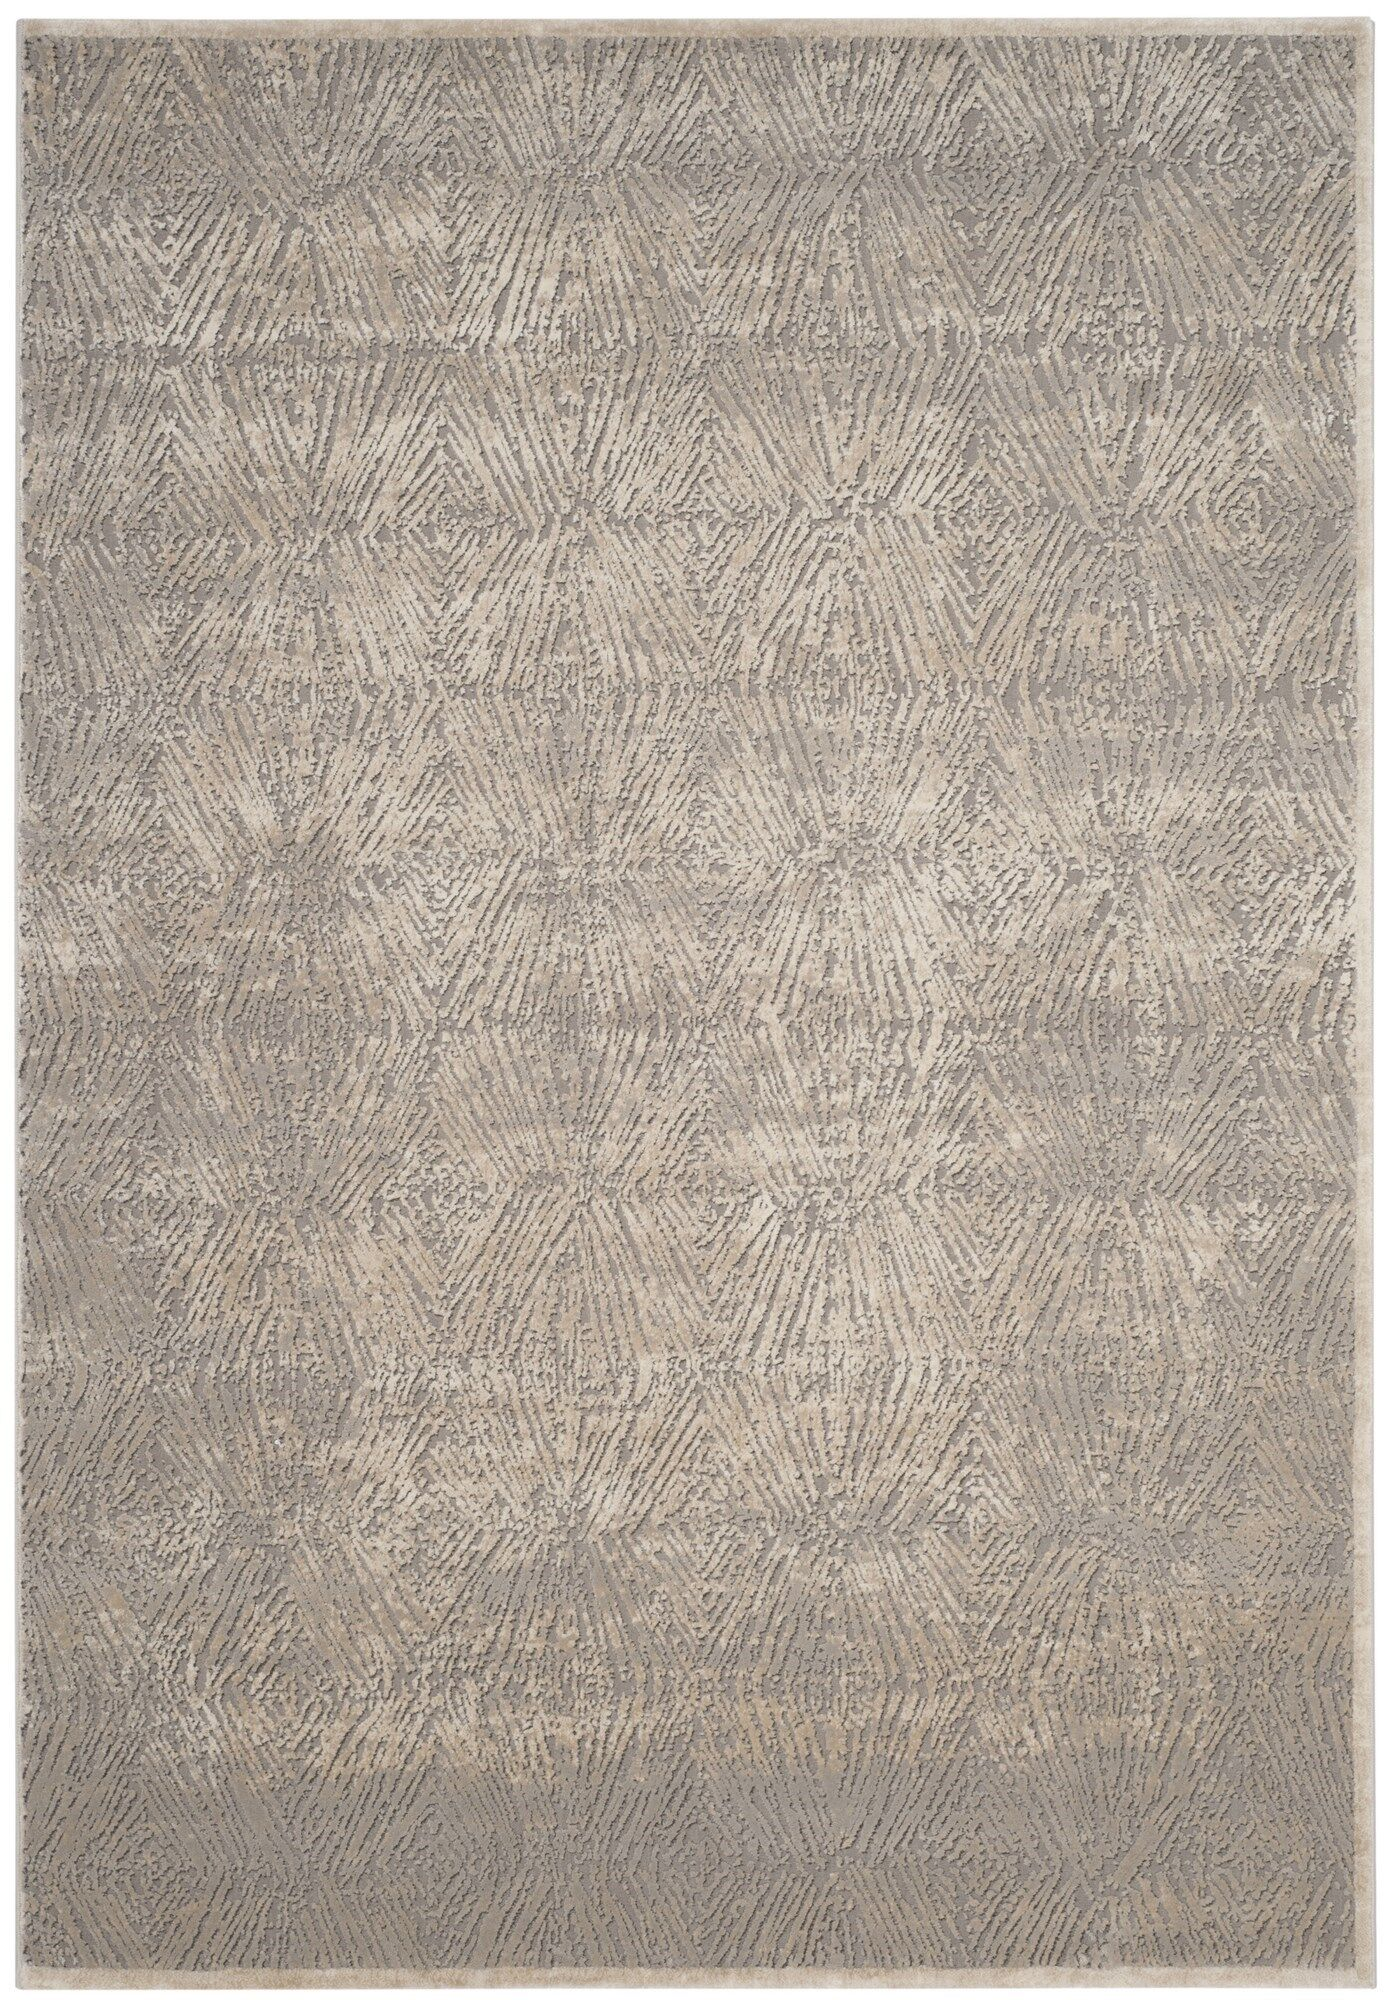 Edvin Brown Area Rug Rug Size: Rectangle 3'3'' x 5'